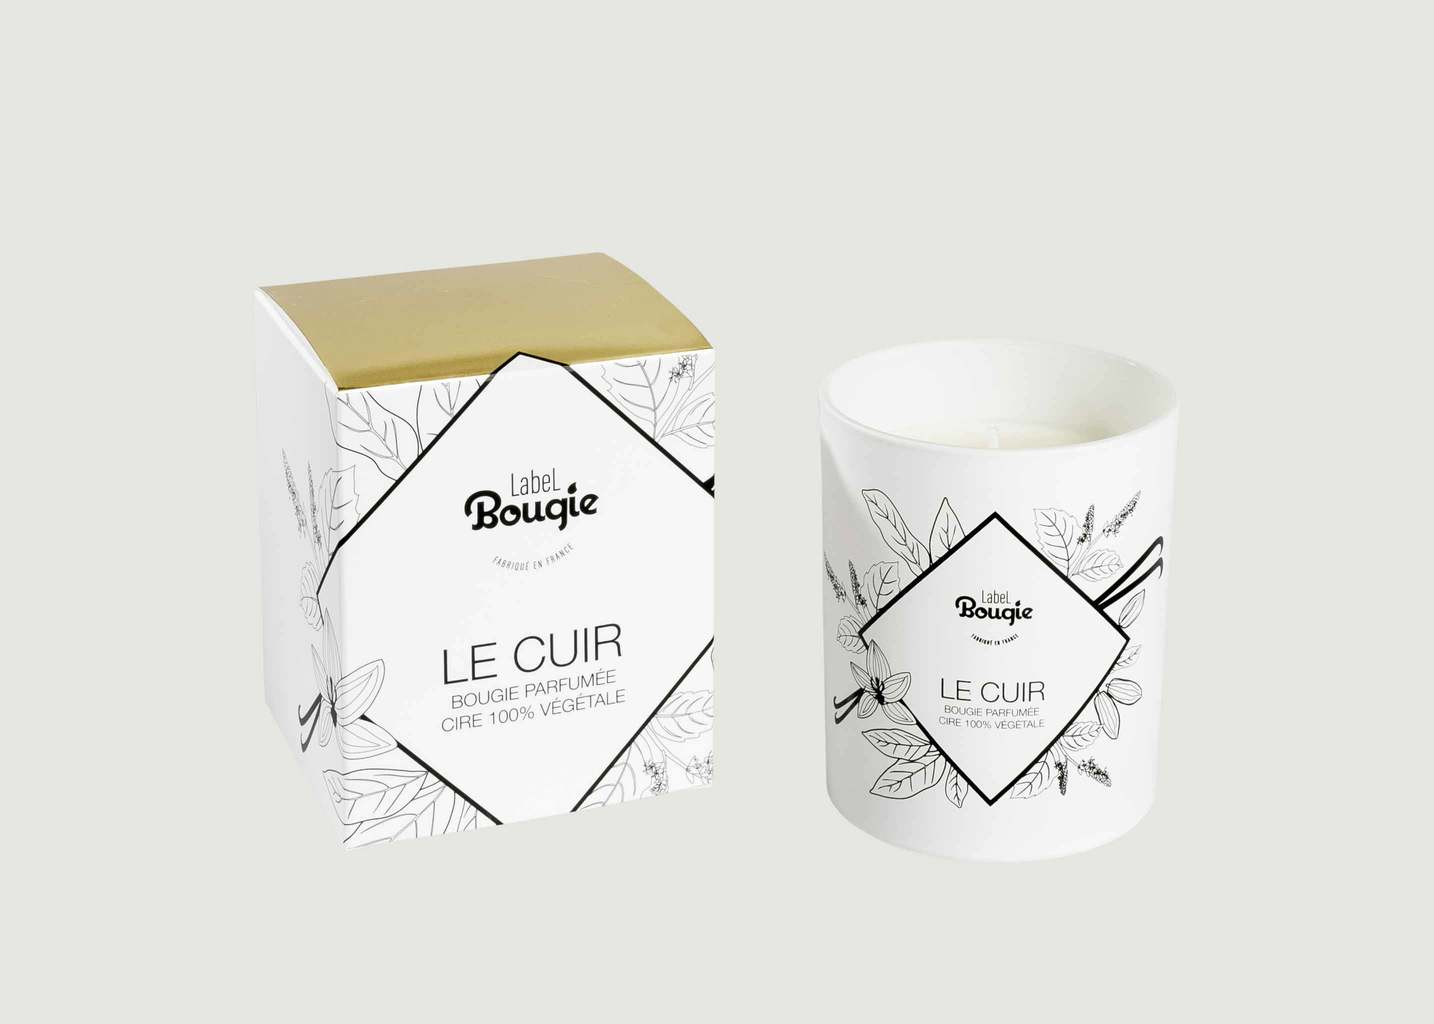 Bougie Bougie Le Cuir 180gr - Label Bougie